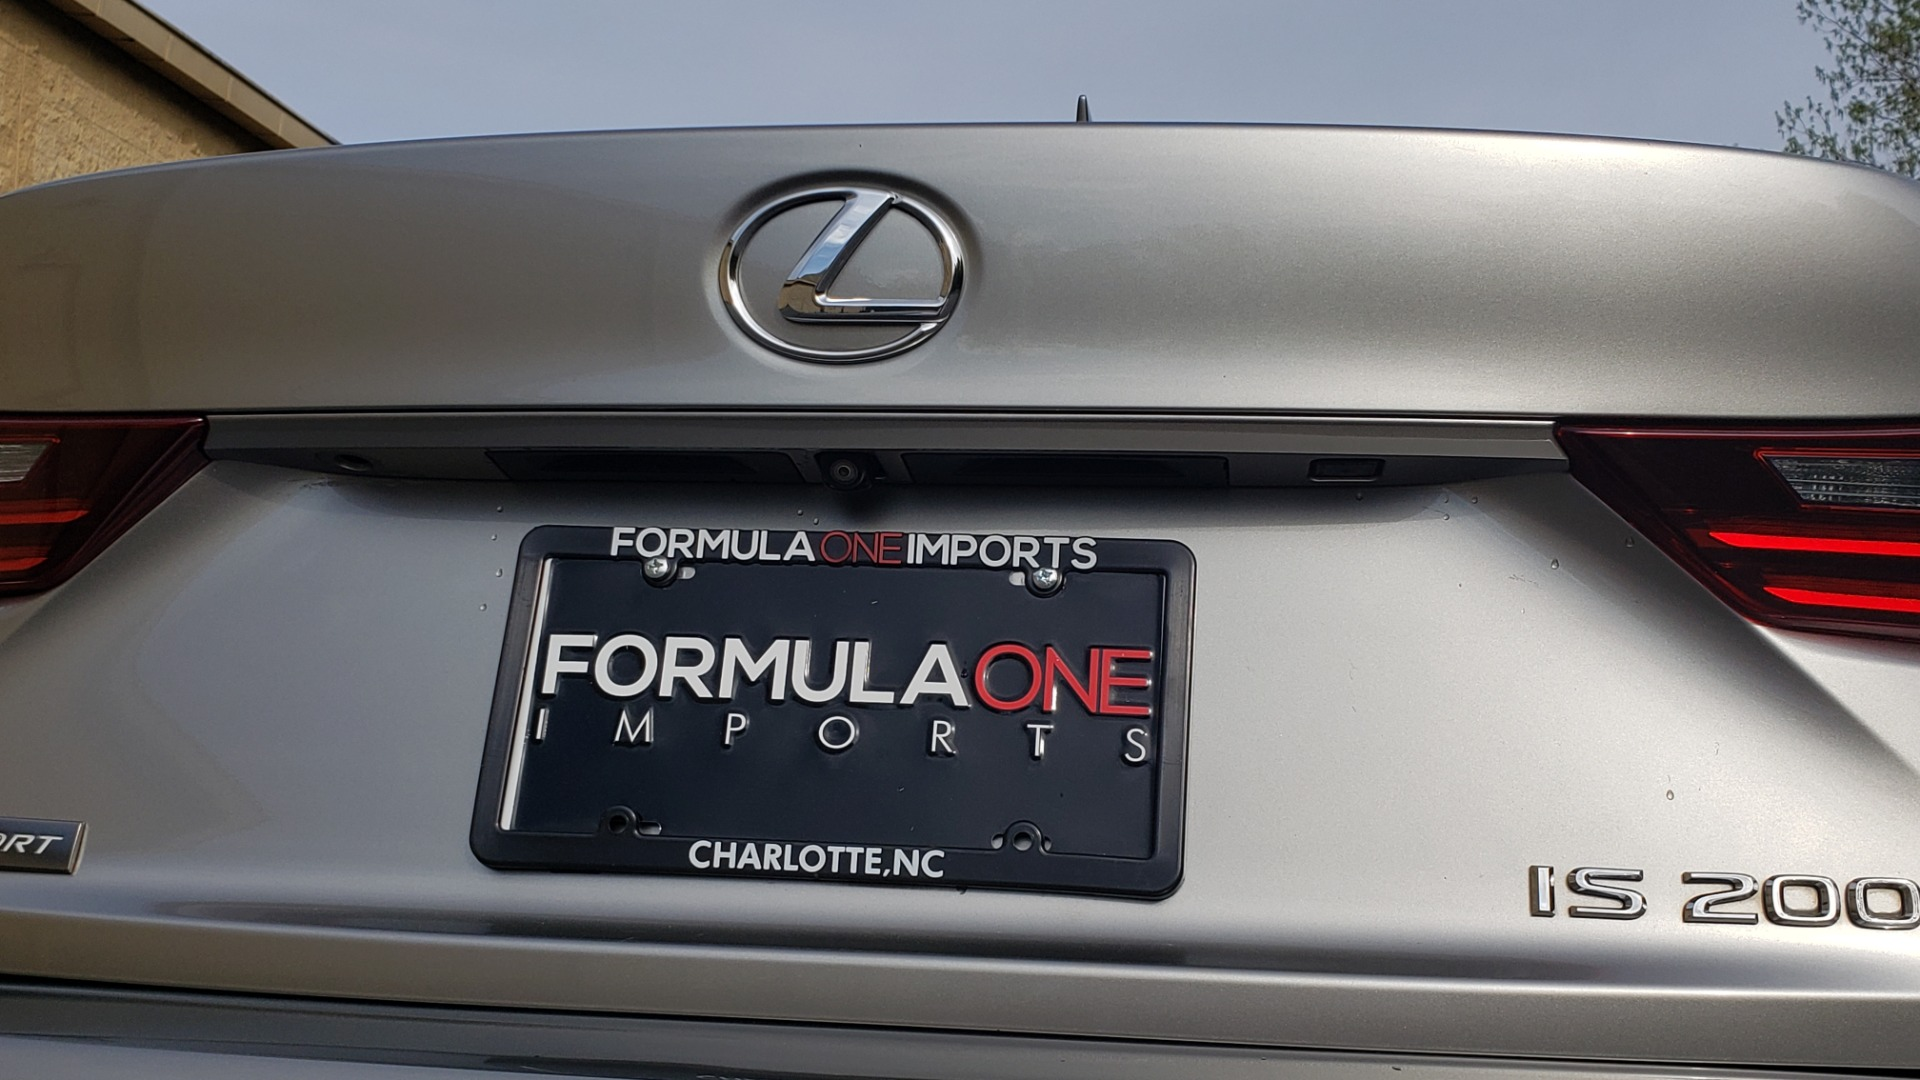 Used 2016 Lexus IS 200T F-SPORT / BSM / SUNROOF / VENTILATED SEATS / REARVIEW for sale Sold at Formula Imports in Charlotte NC 28227 30